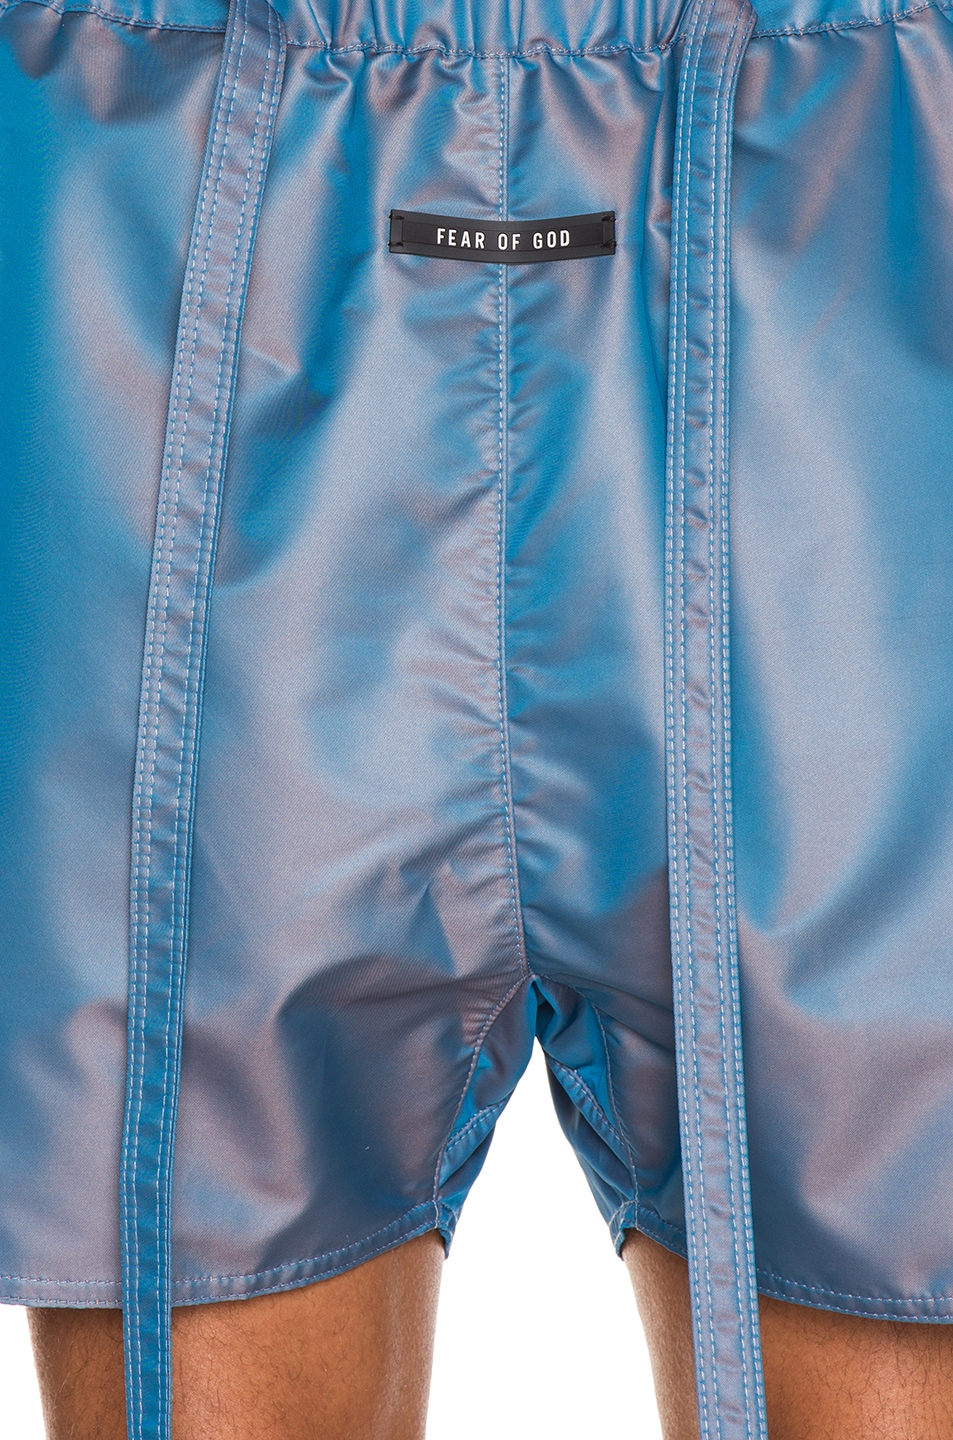 Image 5 of Fear of God Military Training Short in Blue Iridescent